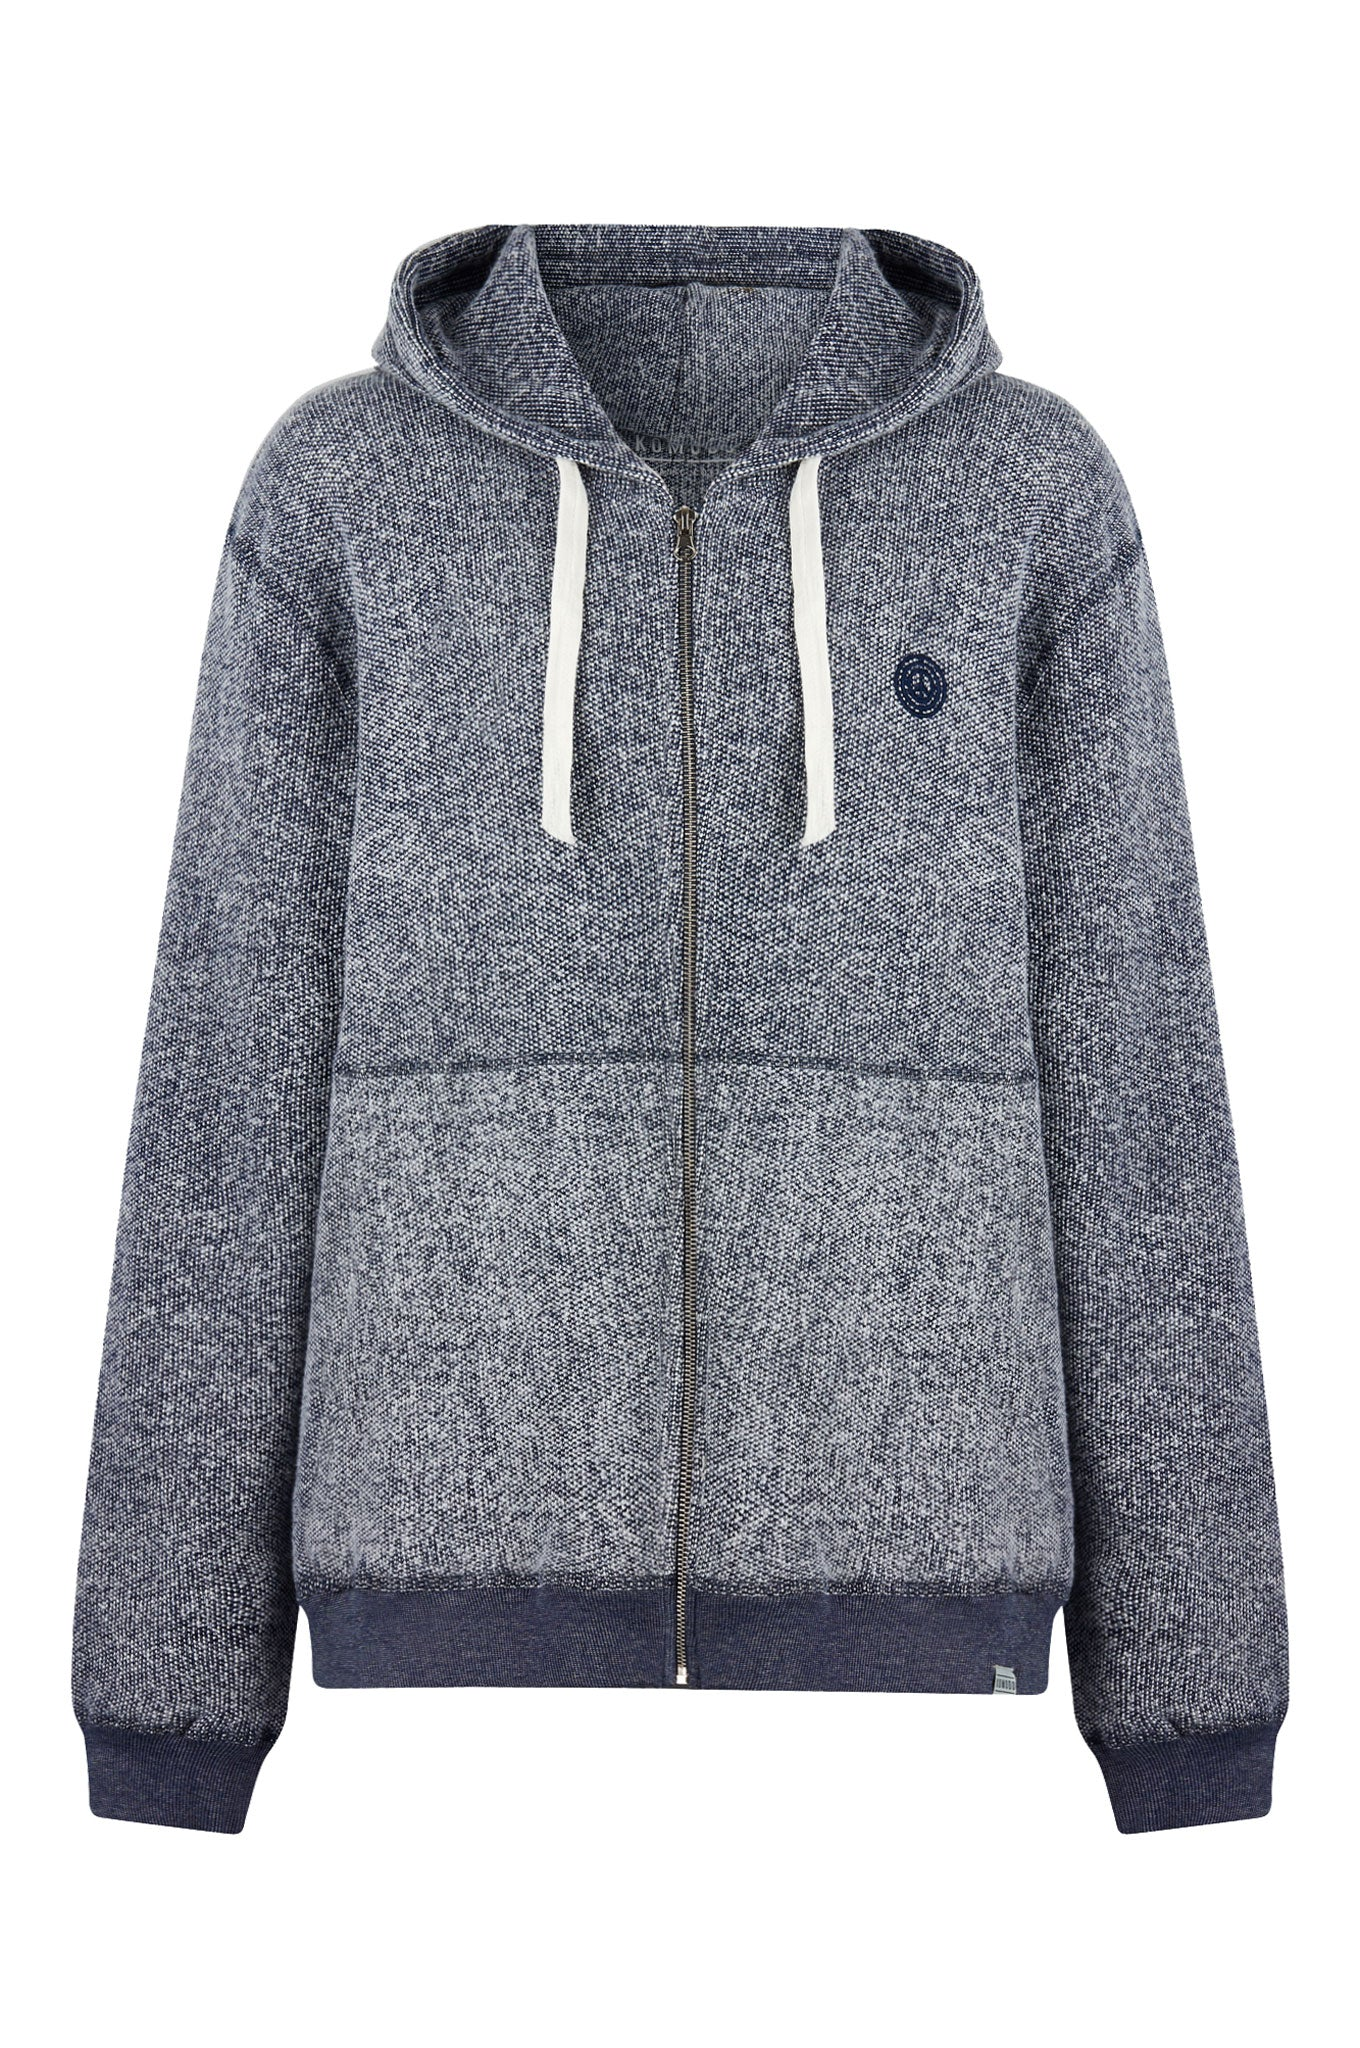 SYDNEY Organic Cotton Zip Through Indigo Melange